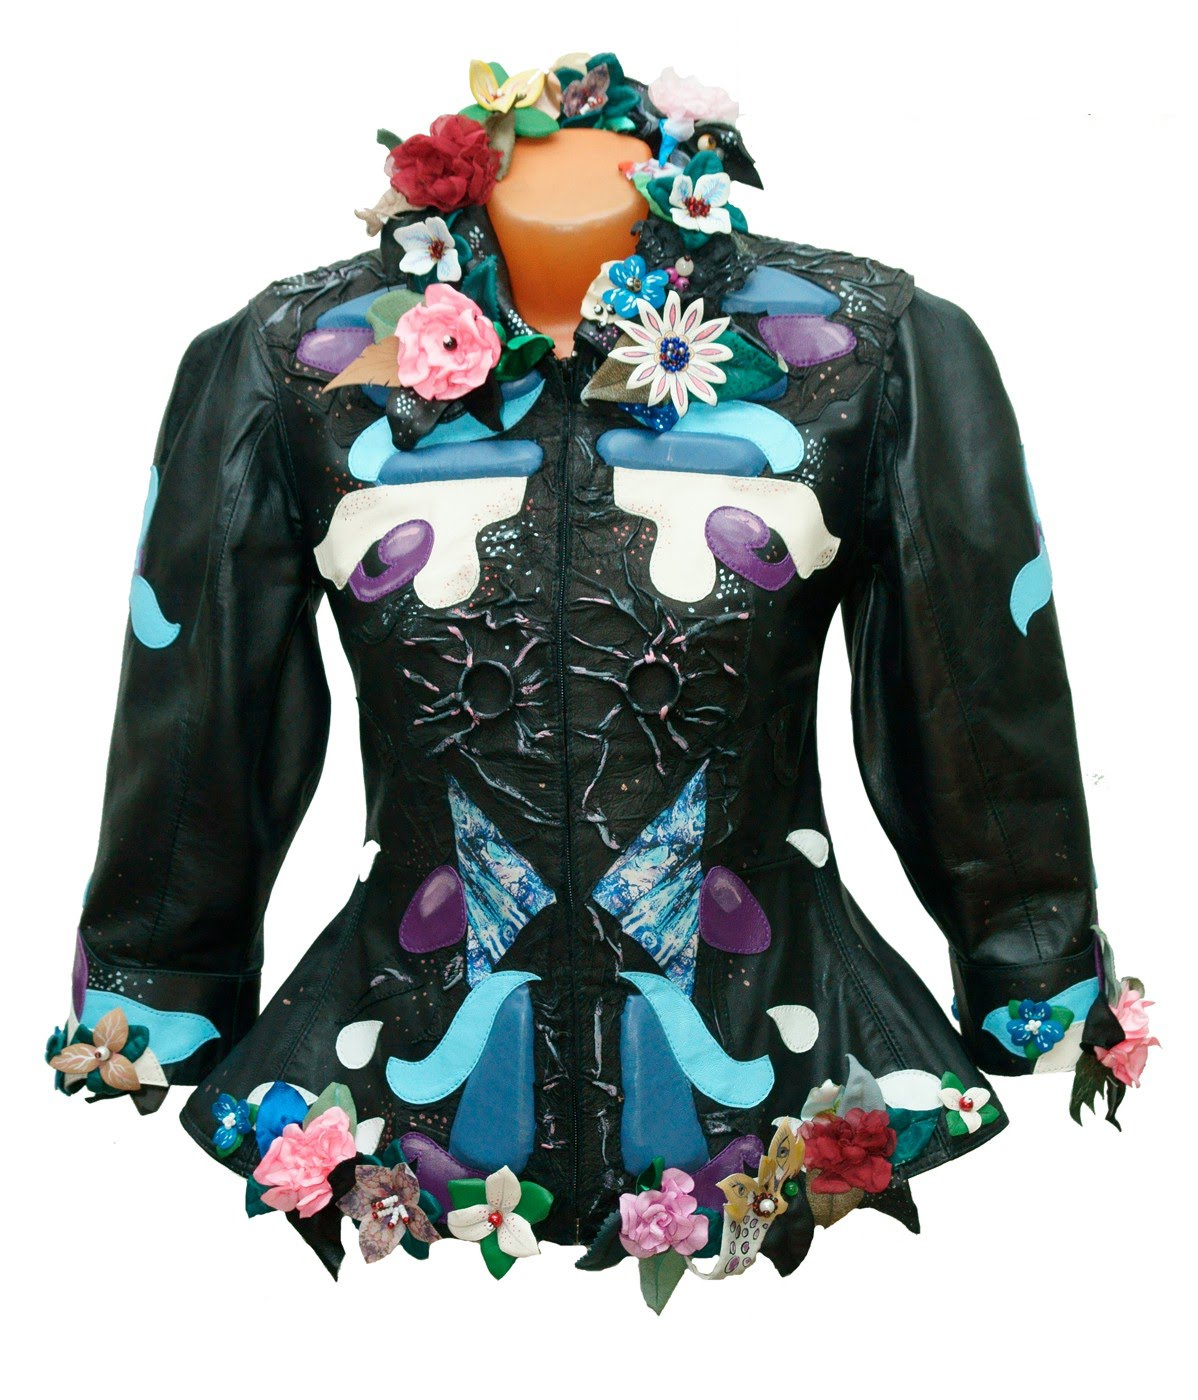 blue black real leather jacket for women 3/4 sleeves 03